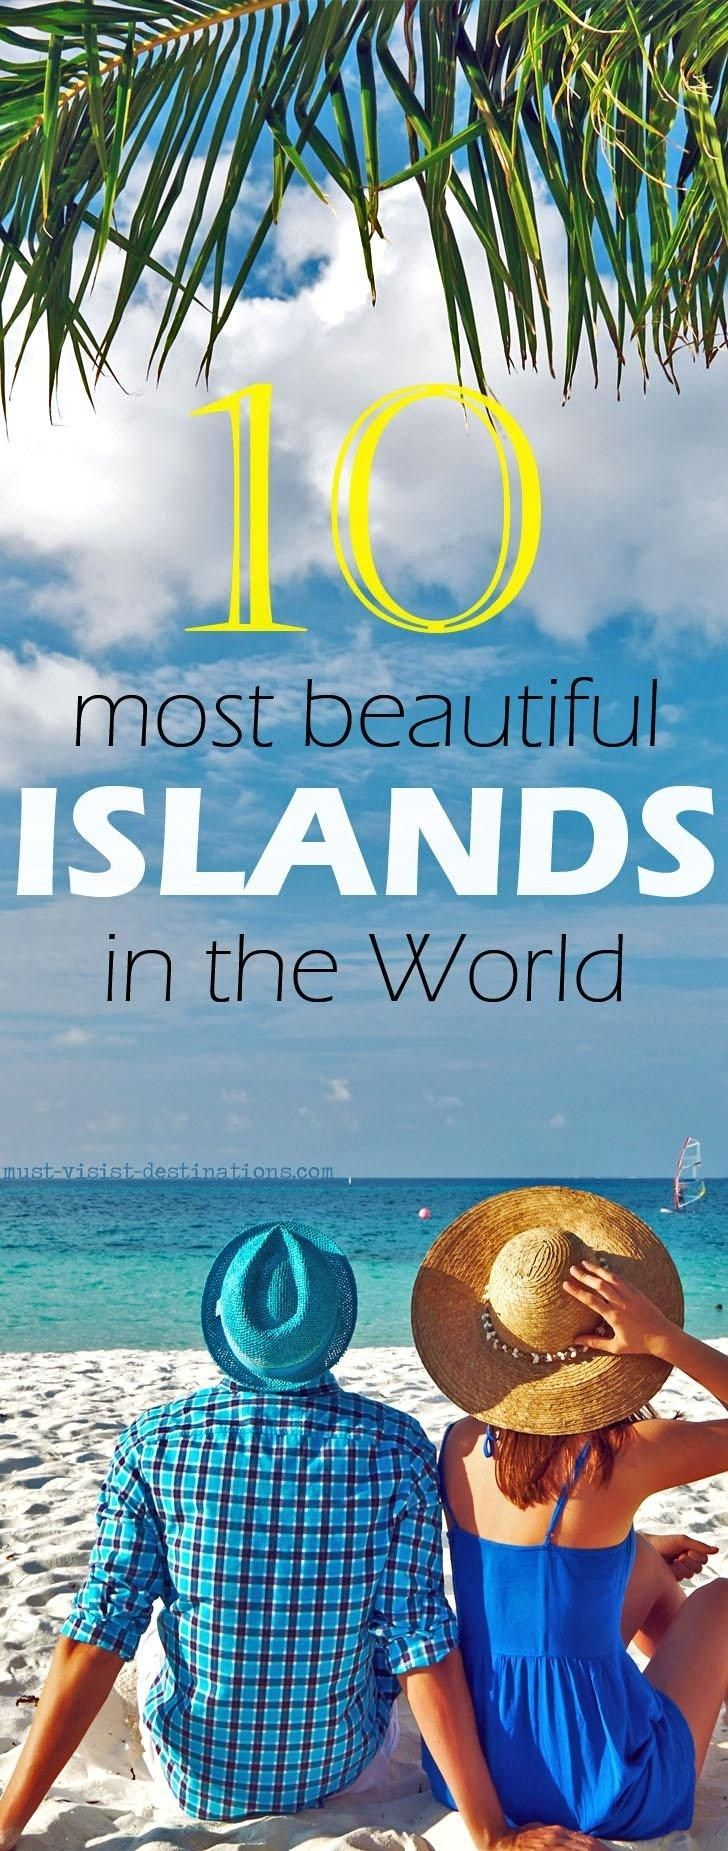 Top 10 Most Beautiful Islands In The World - The ...  |Most Beautiful Island Destinations